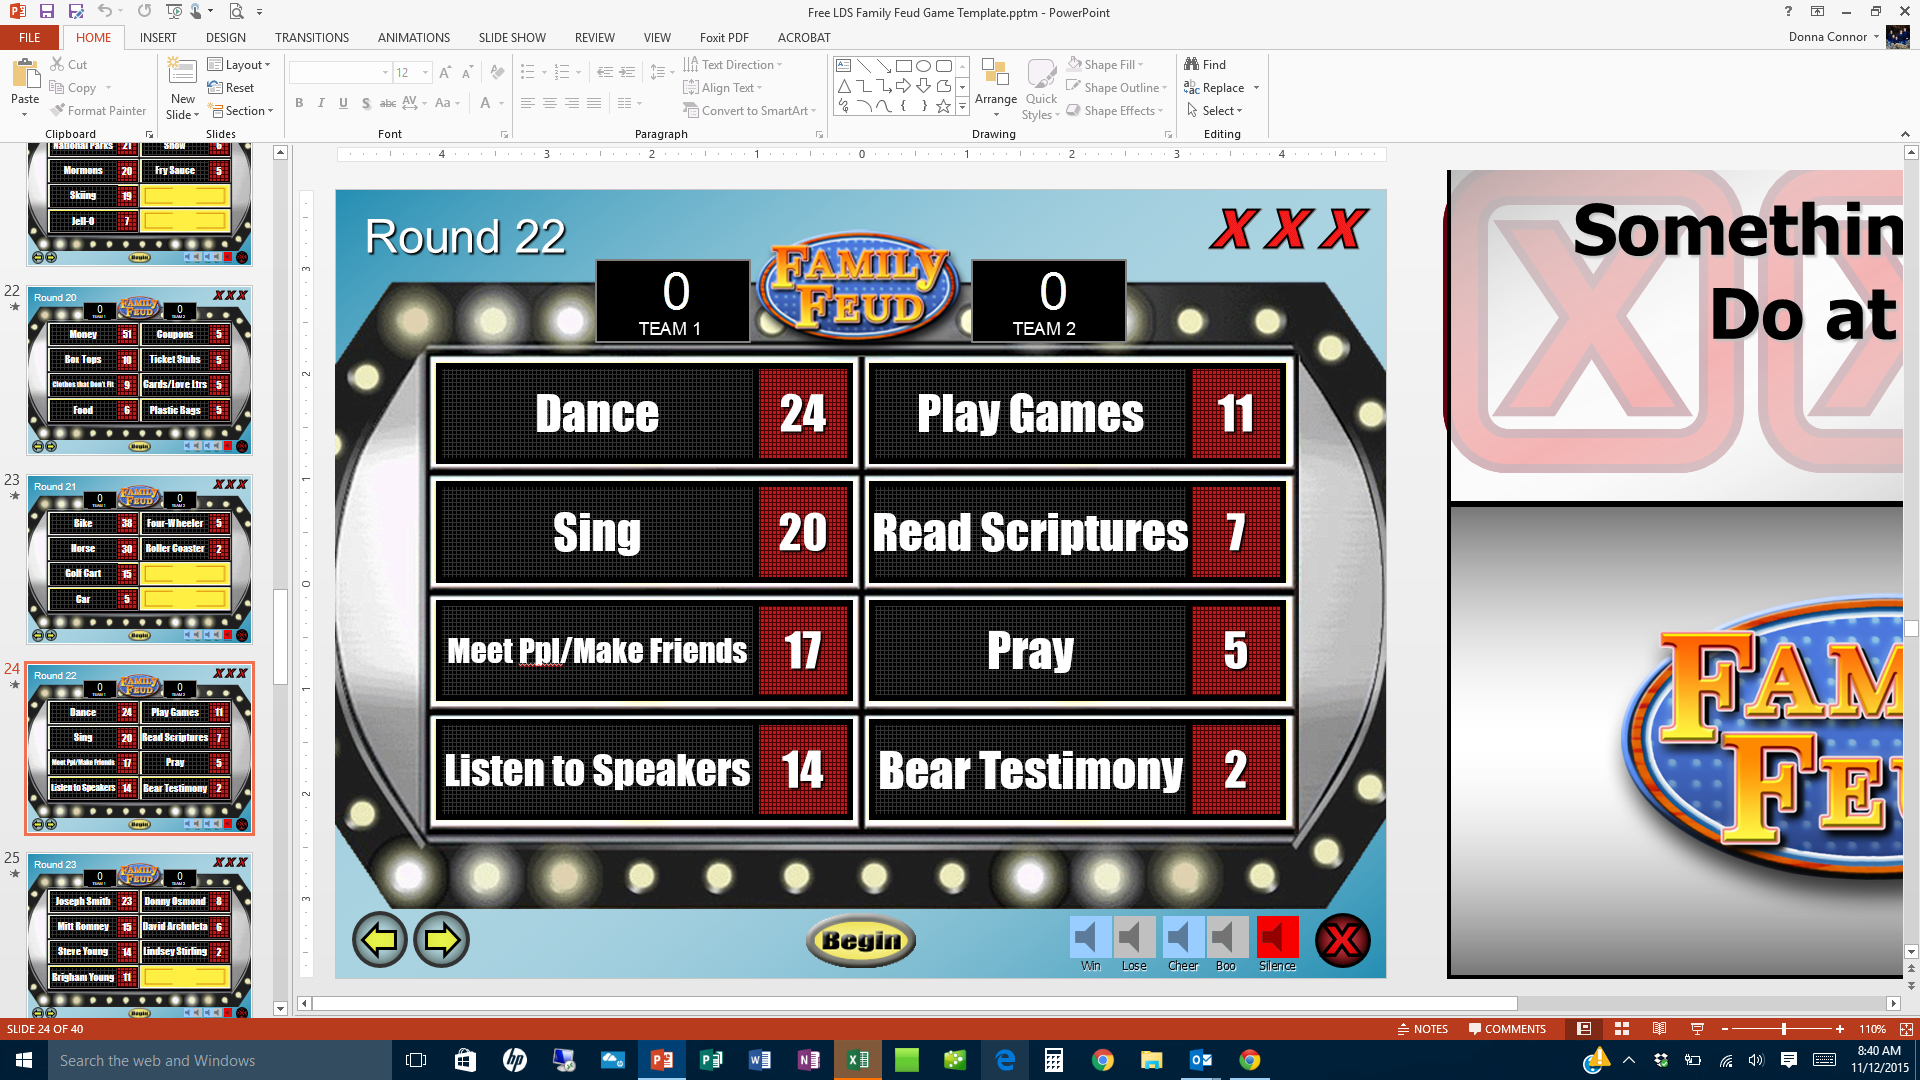 Free Lds Family Feud Game Template Screen Shot  Church  Family With Regard To Family Feud Game Template Powerpoint Free